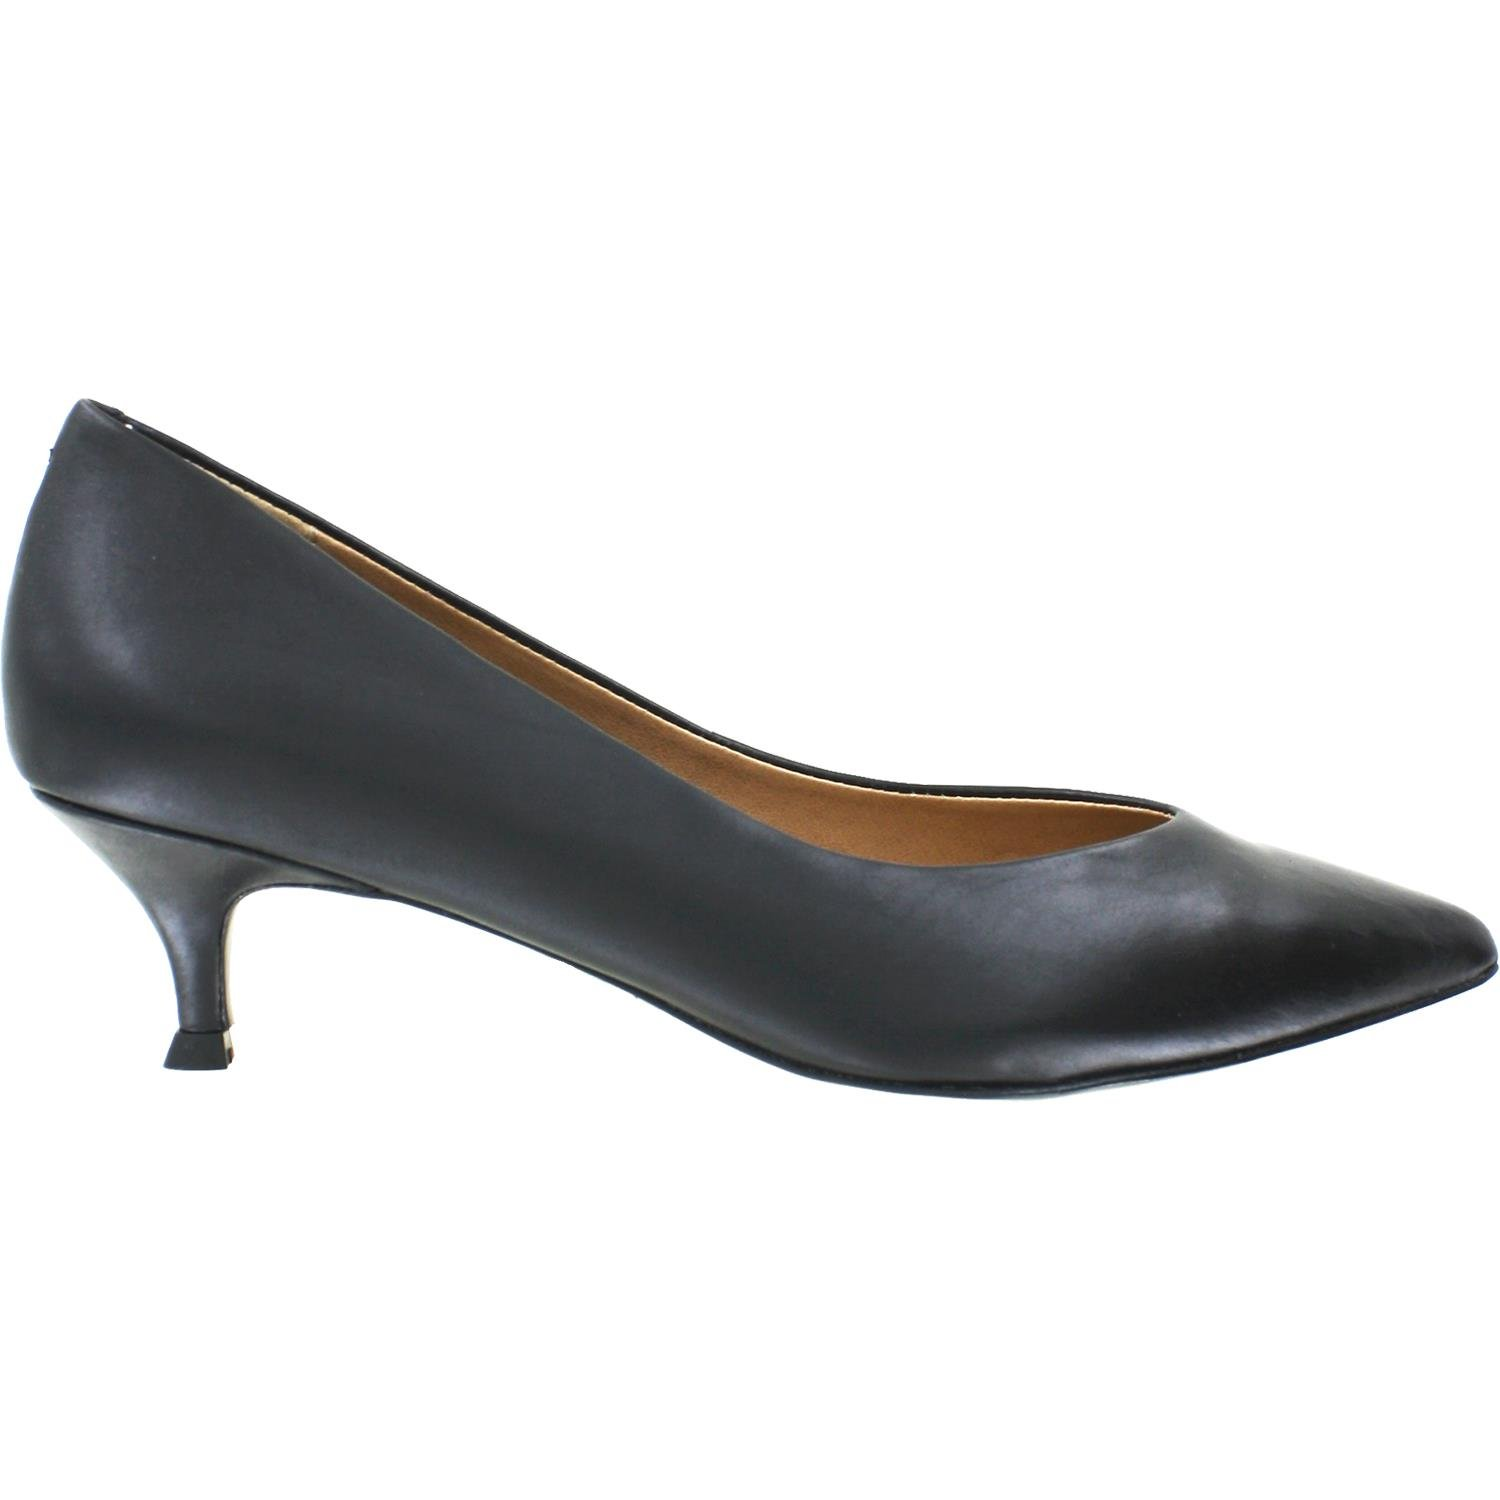 Vionic Womens Josie Kitten Heel Black Pump - 8.5 M